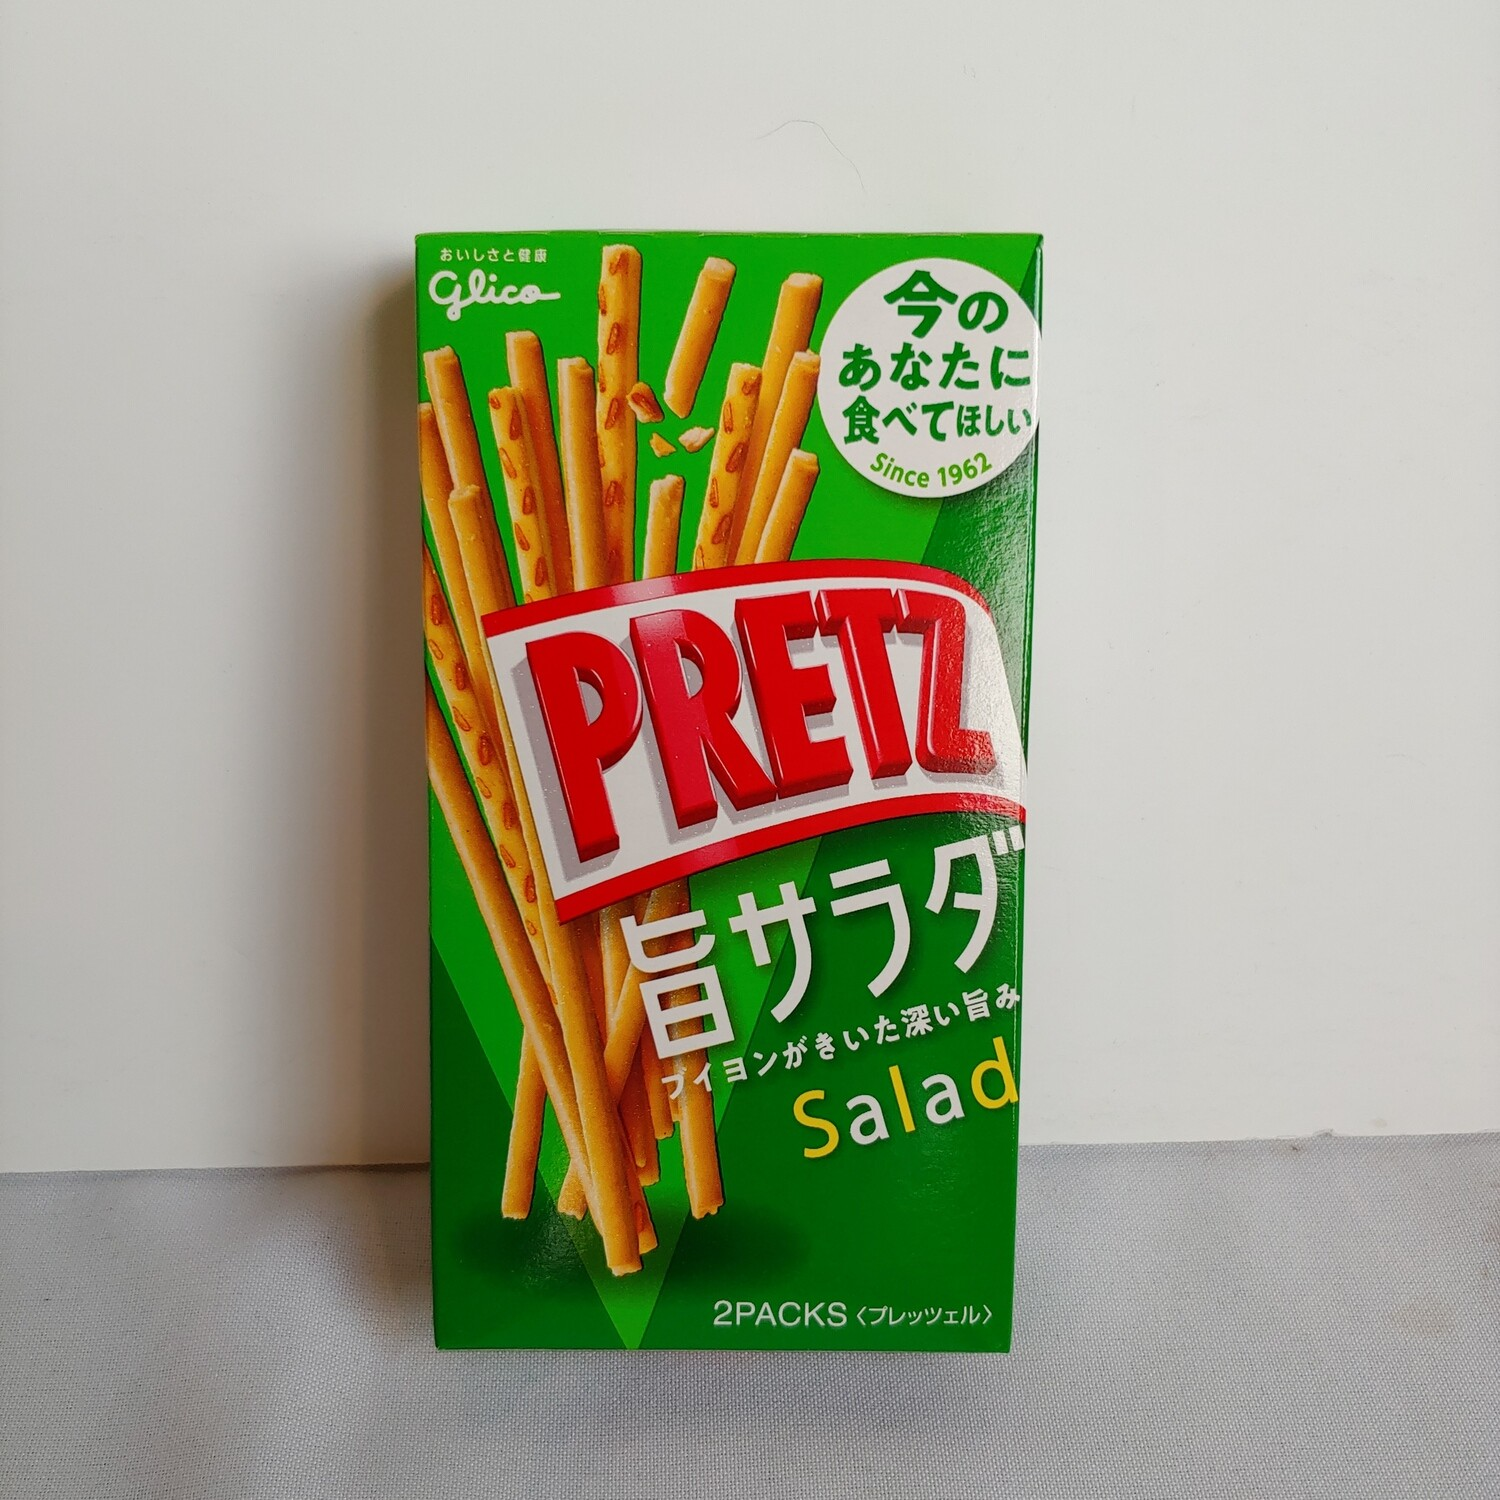 Glico Pretz Salad Biscuit Sticks